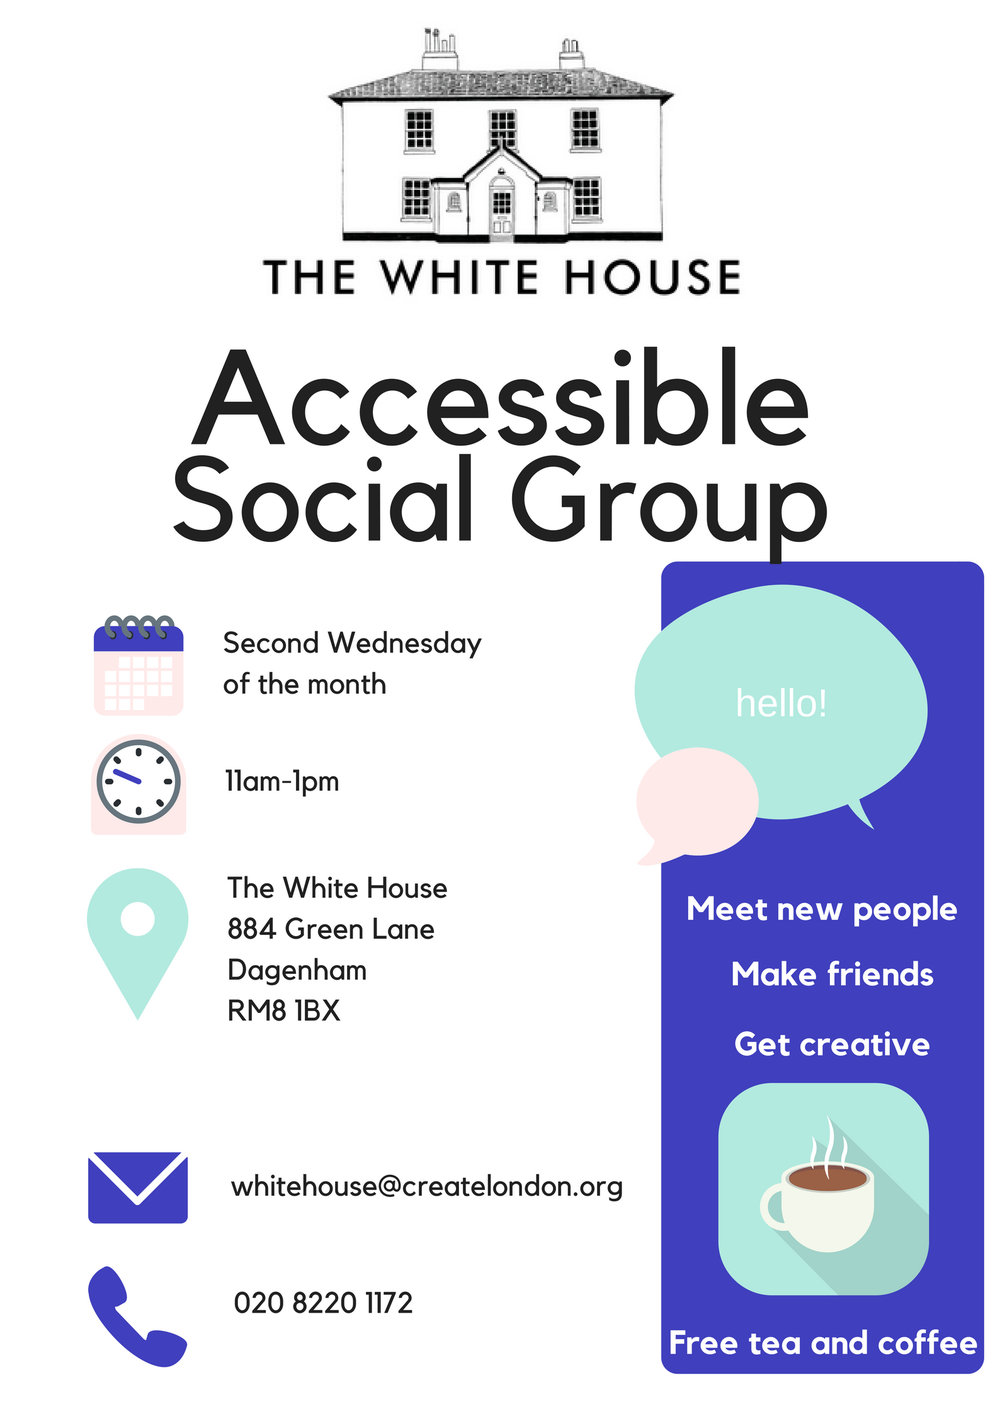 Accessible Social Group for adults with disabilities